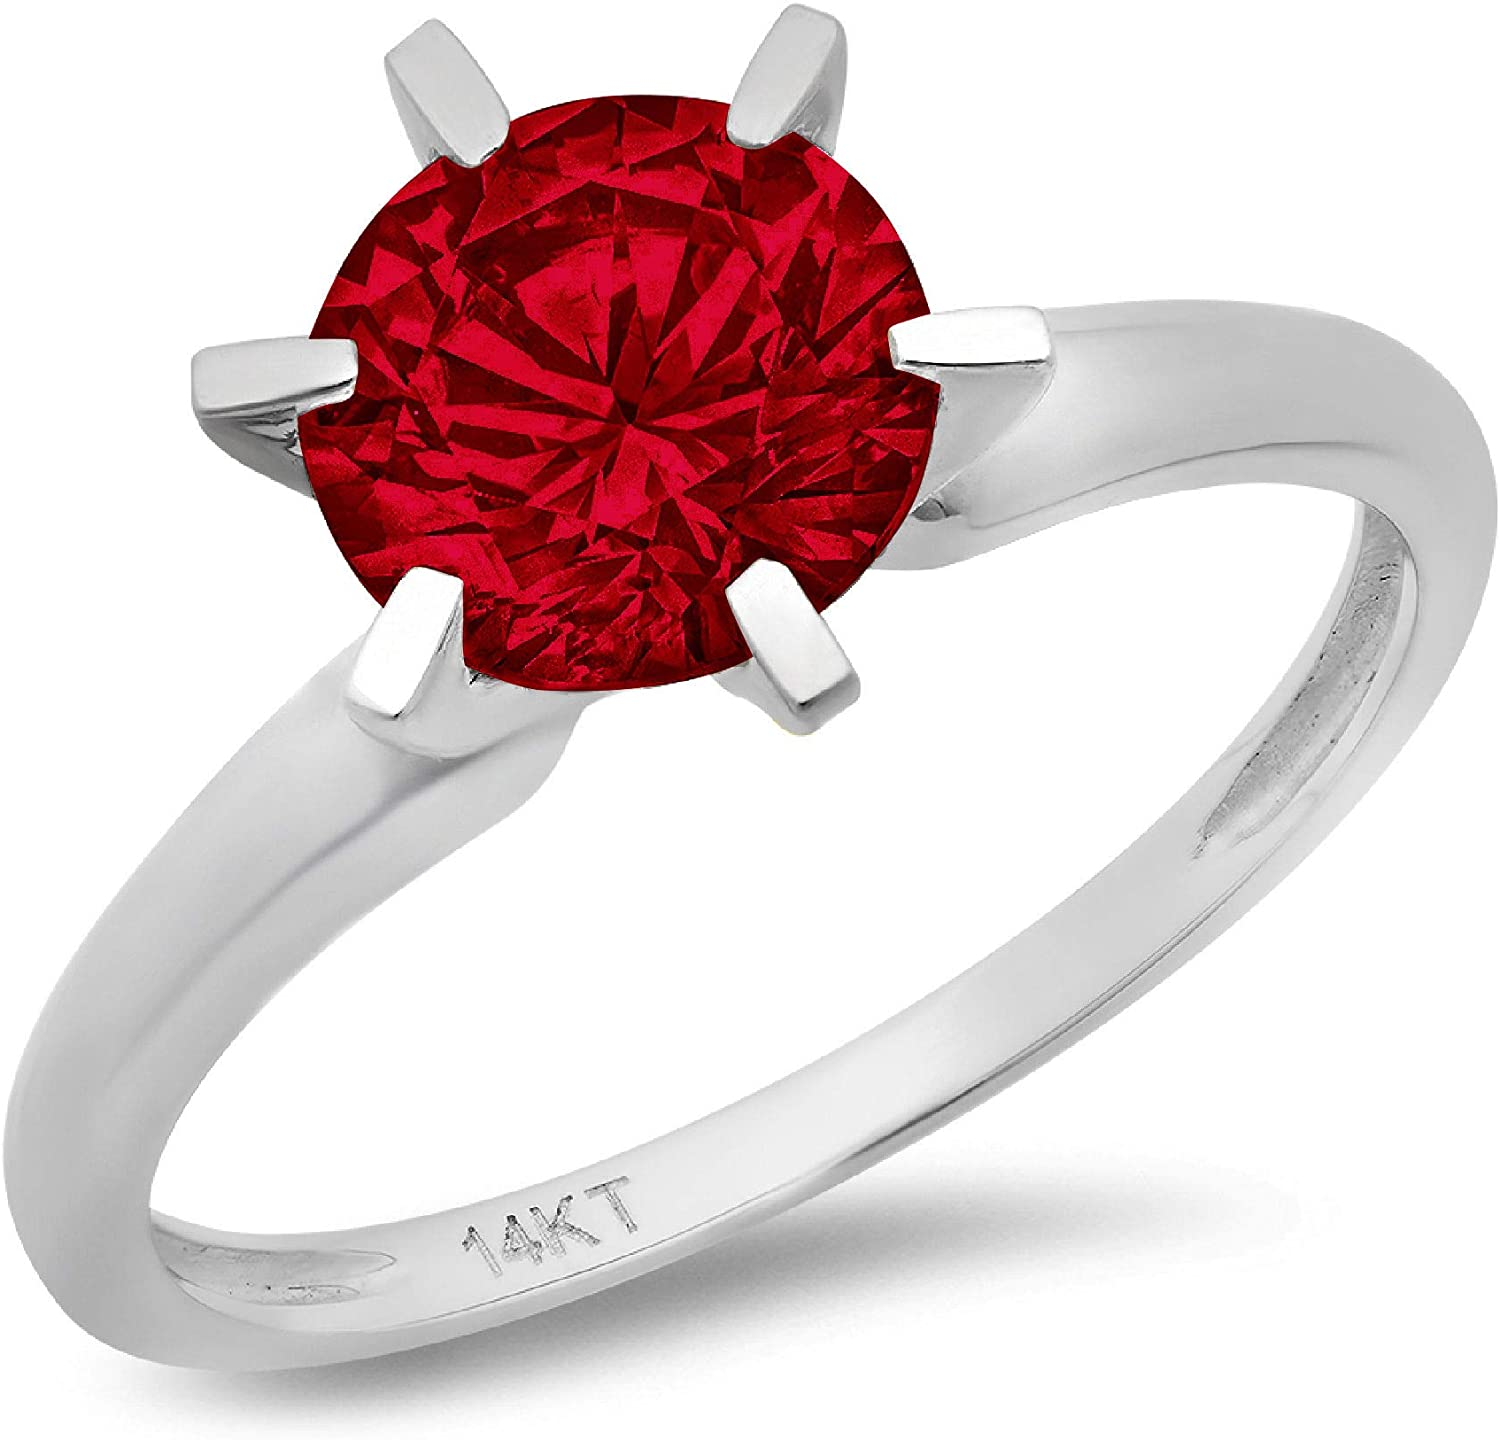 2.4ct Round Cut Solitaire Natural Crimson Deep Red Garnet Excellent VVS1 6-prong Engagement Wedding Bridal Promise Anniversary Ring Solid 14k White Gold for Women